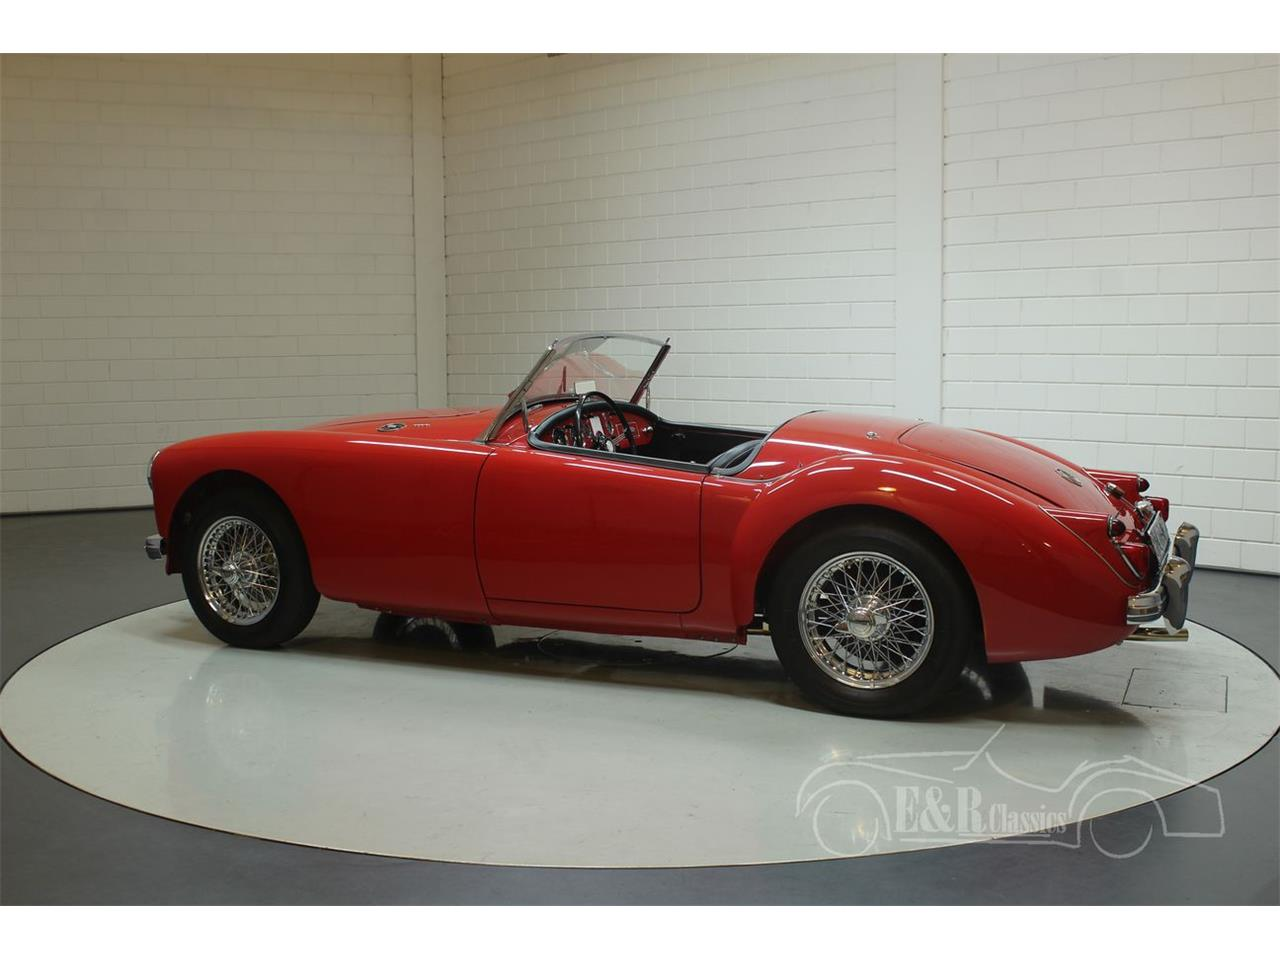 Large Picture of 1959 MG MGA located in - Keine Angabe - Offered by E & R Classics - PGST